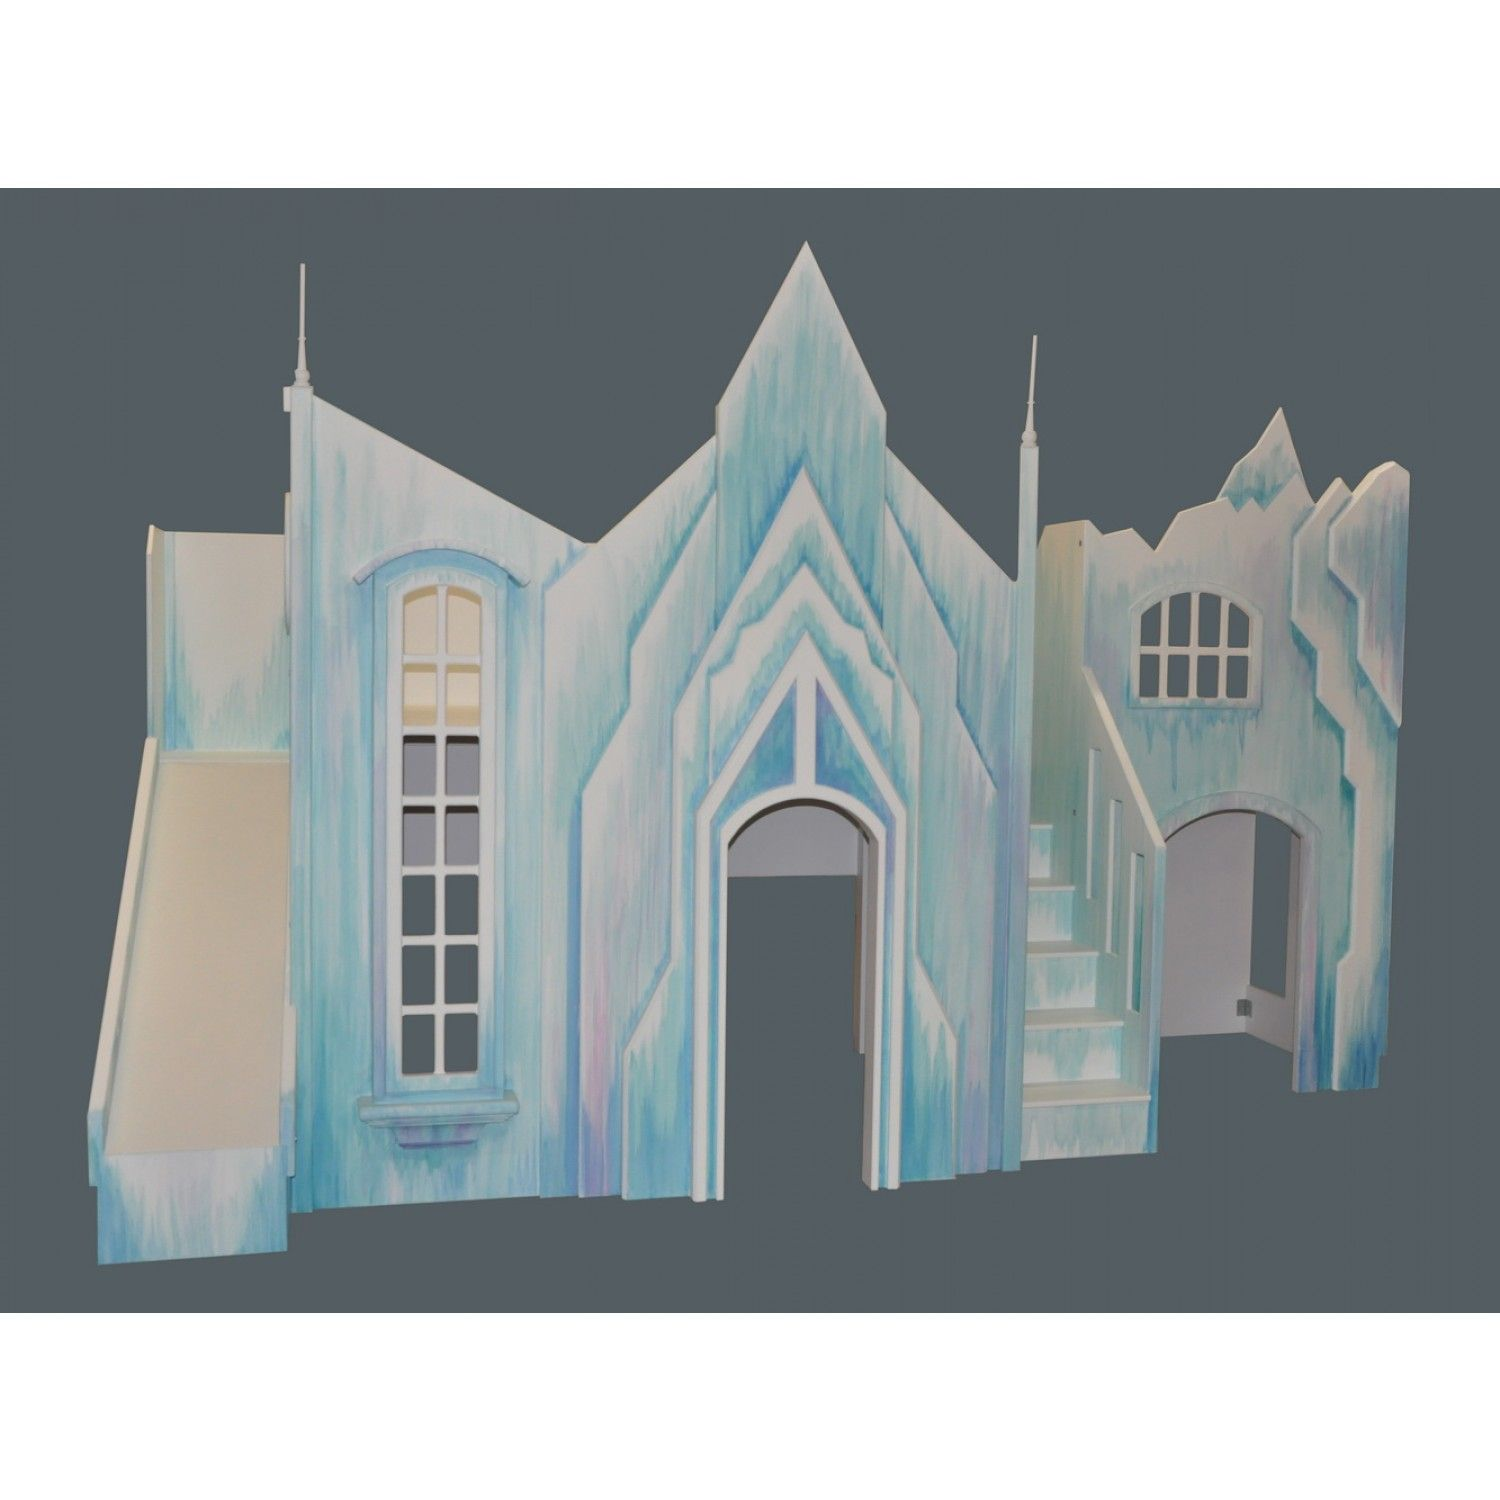 Frozen Castle w Slide Stairs and Optional Playhouse